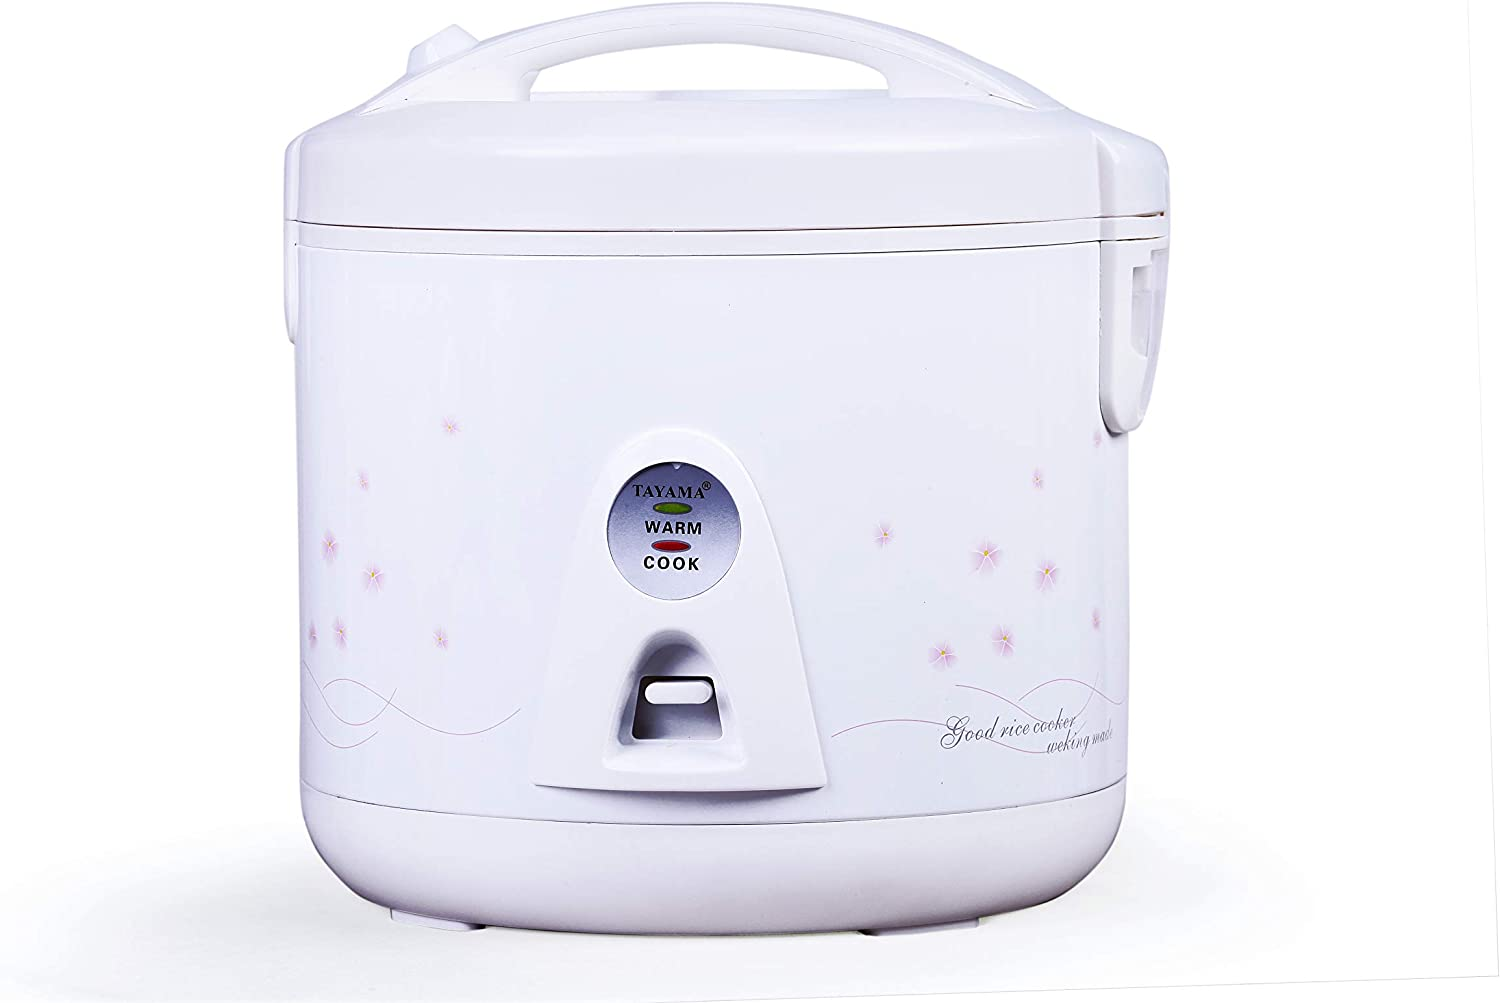 Tayama Automatic Rice Cooker & Food Steamer 10 Cup, White (TRC-1000V)